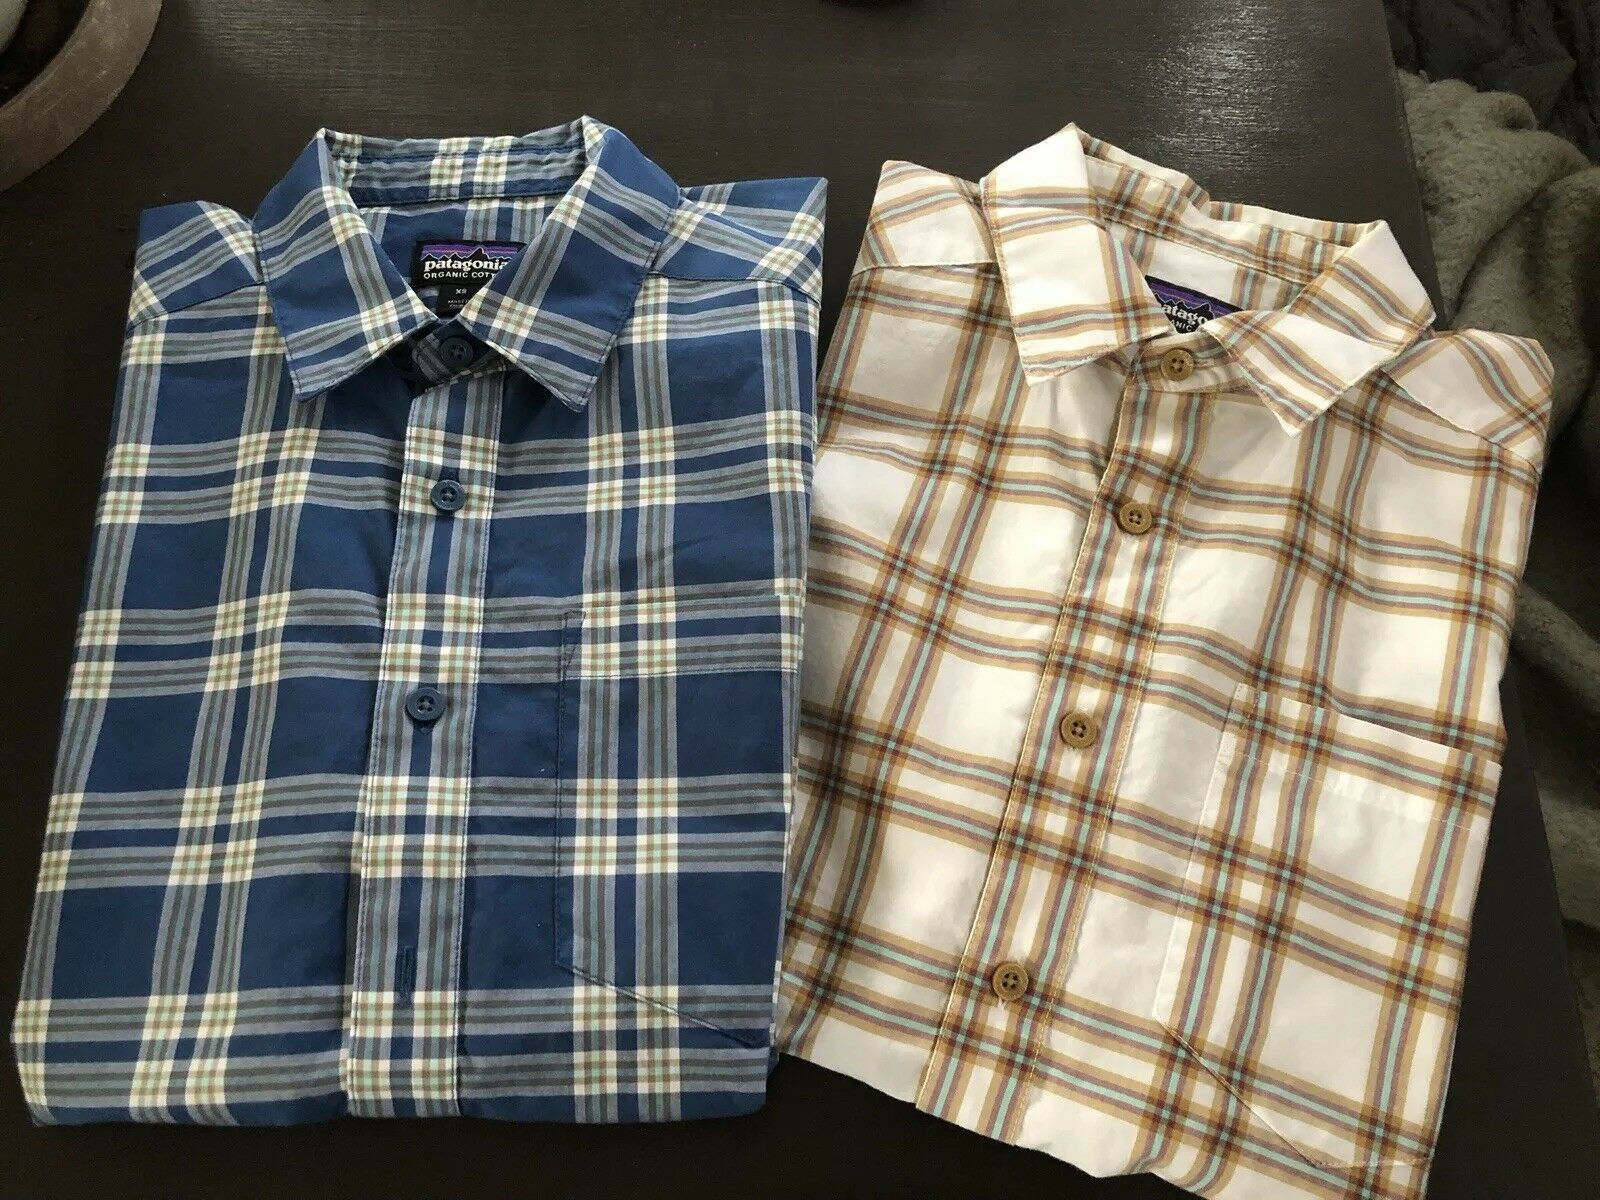 Patagonia Men's Short Sleeve Plaid Button Up Dress Shirts In XS